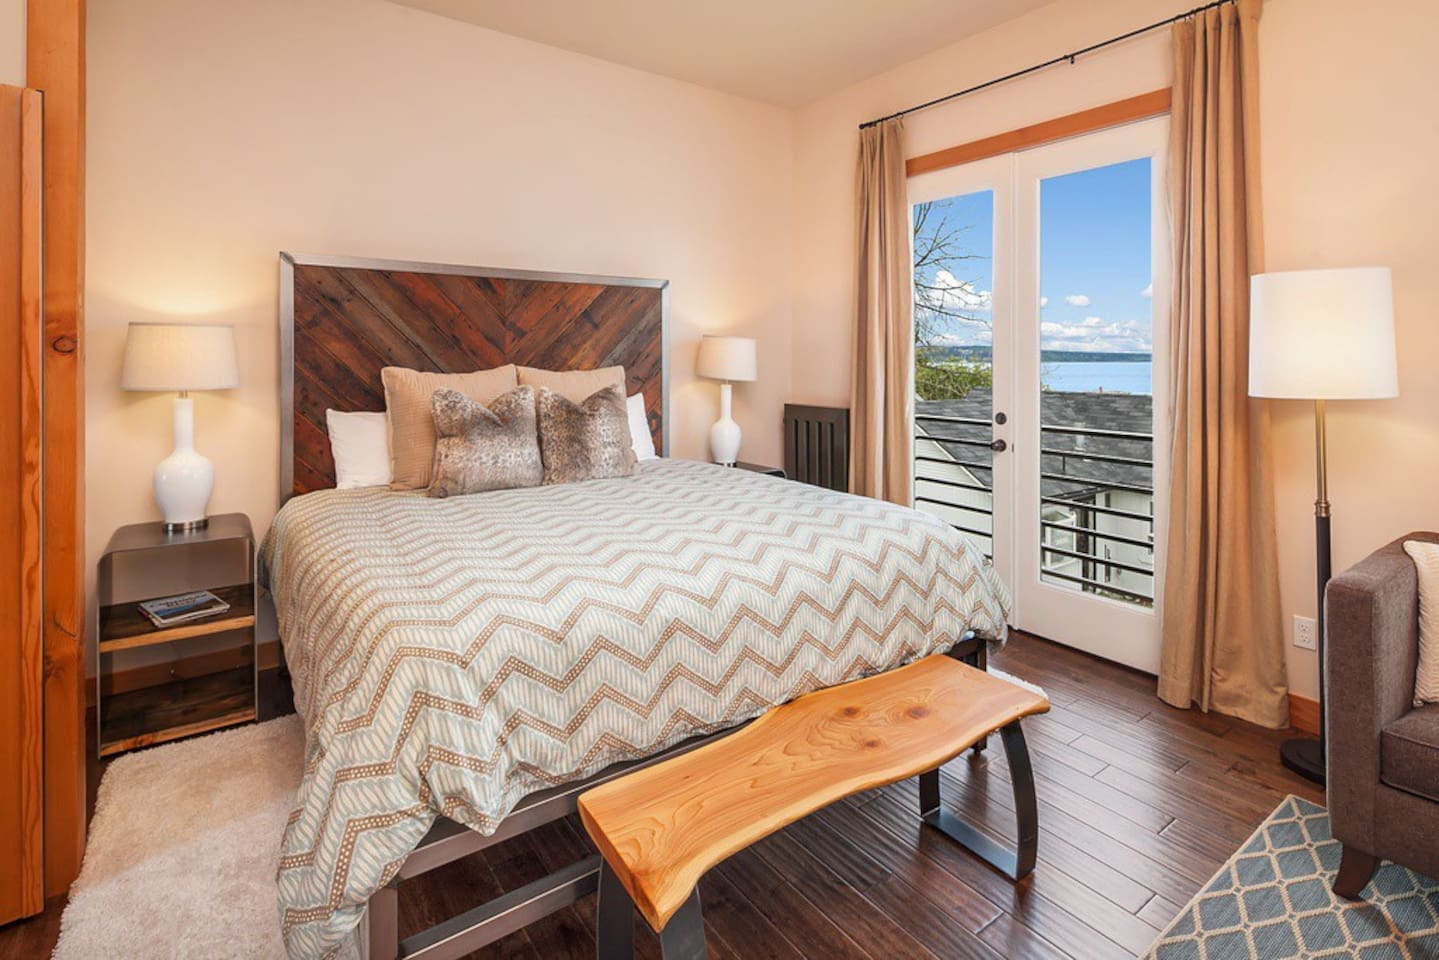 Whidbey room, Comfy King Bed, Views!  Hand crafted furniture.  New, Modern, Luxury.  Better than any Hotel!